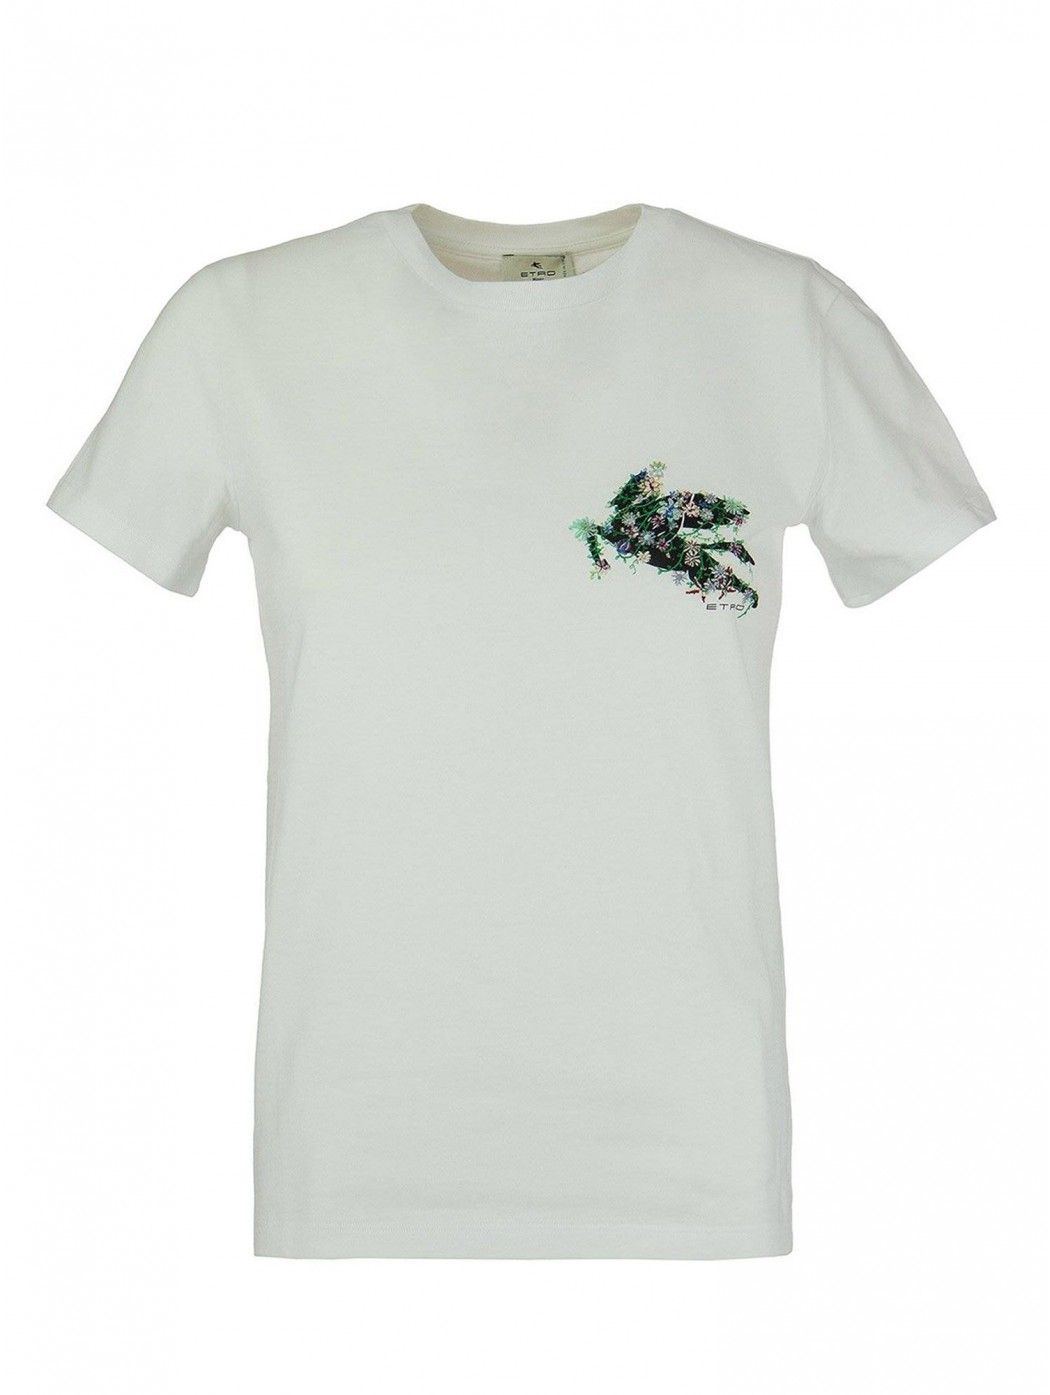 T-SHIRT FITTED JERSEY ETRO DONNA 145147957 0990